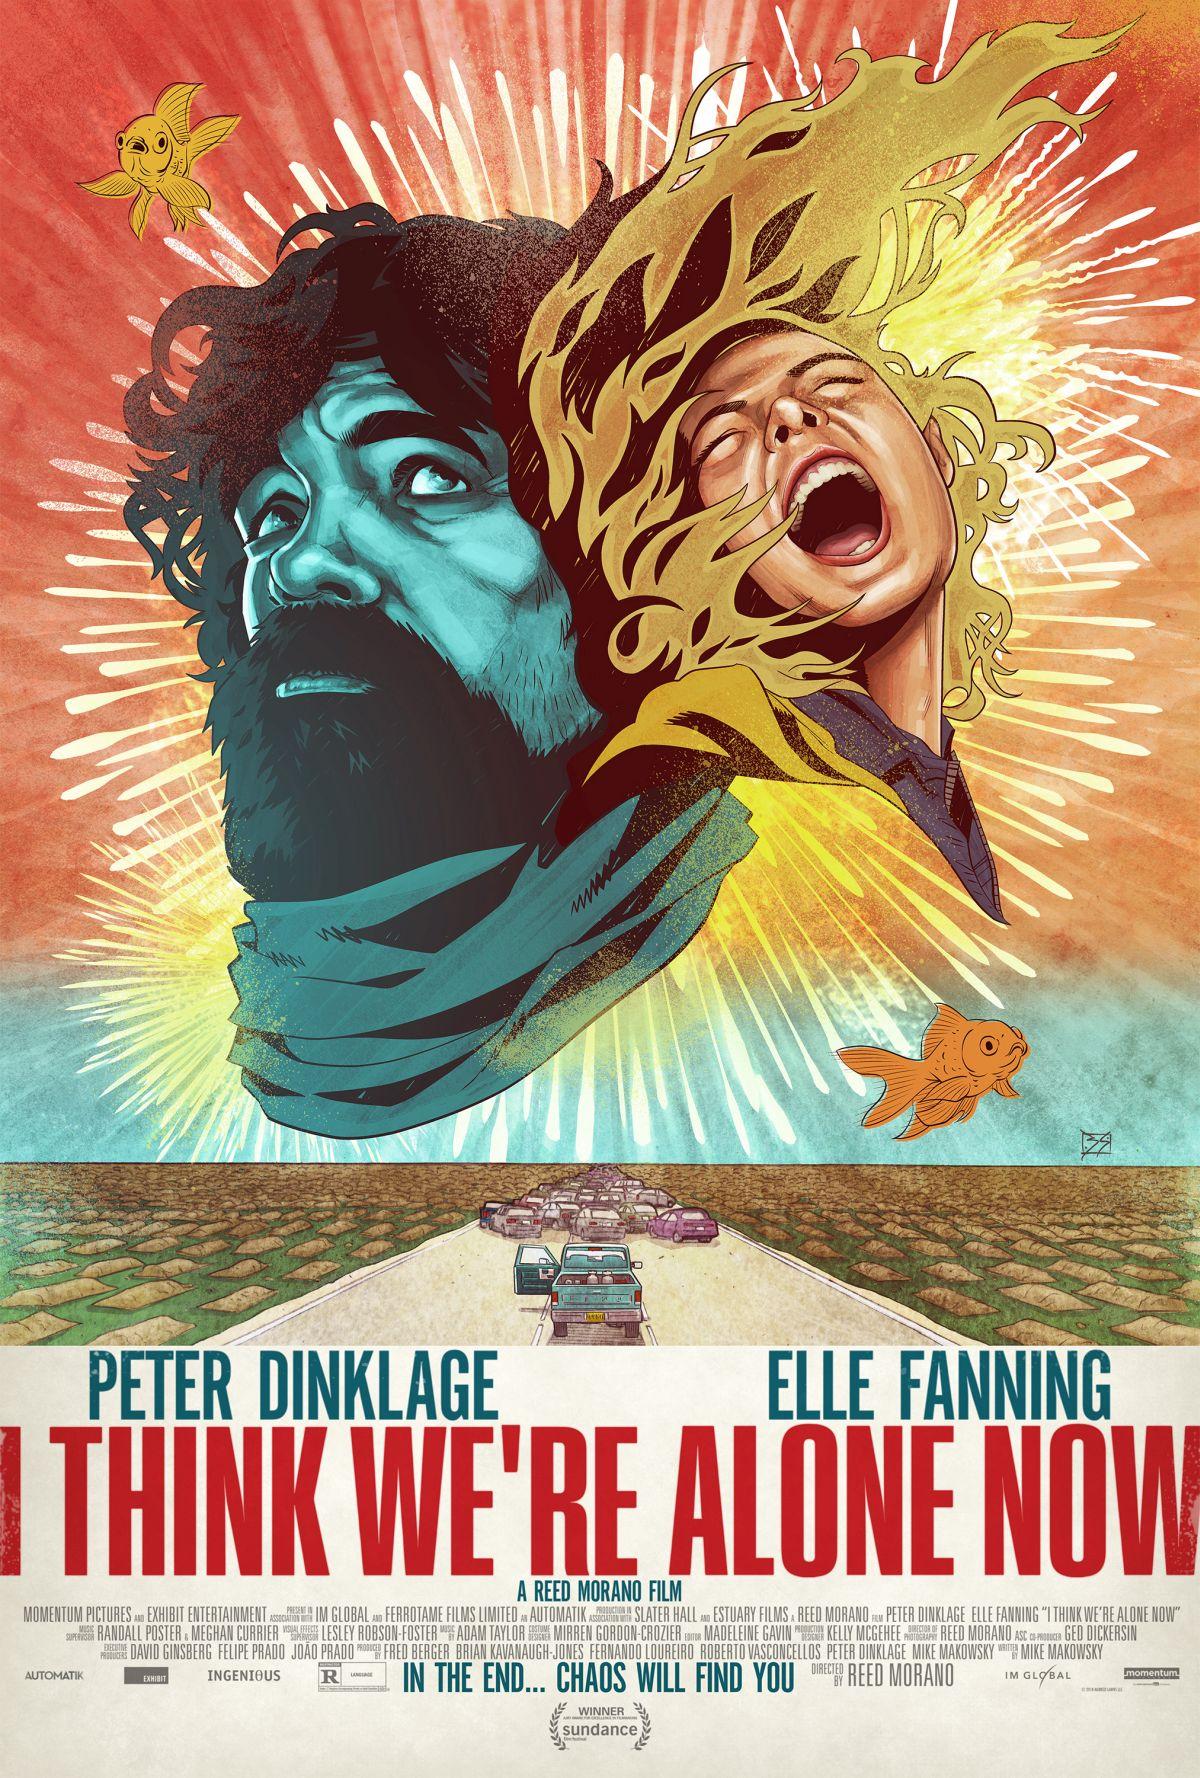 full-trailer-for-peter-dinklages-post-apocalyptic-film-i-think-were-alone-now2.jpg